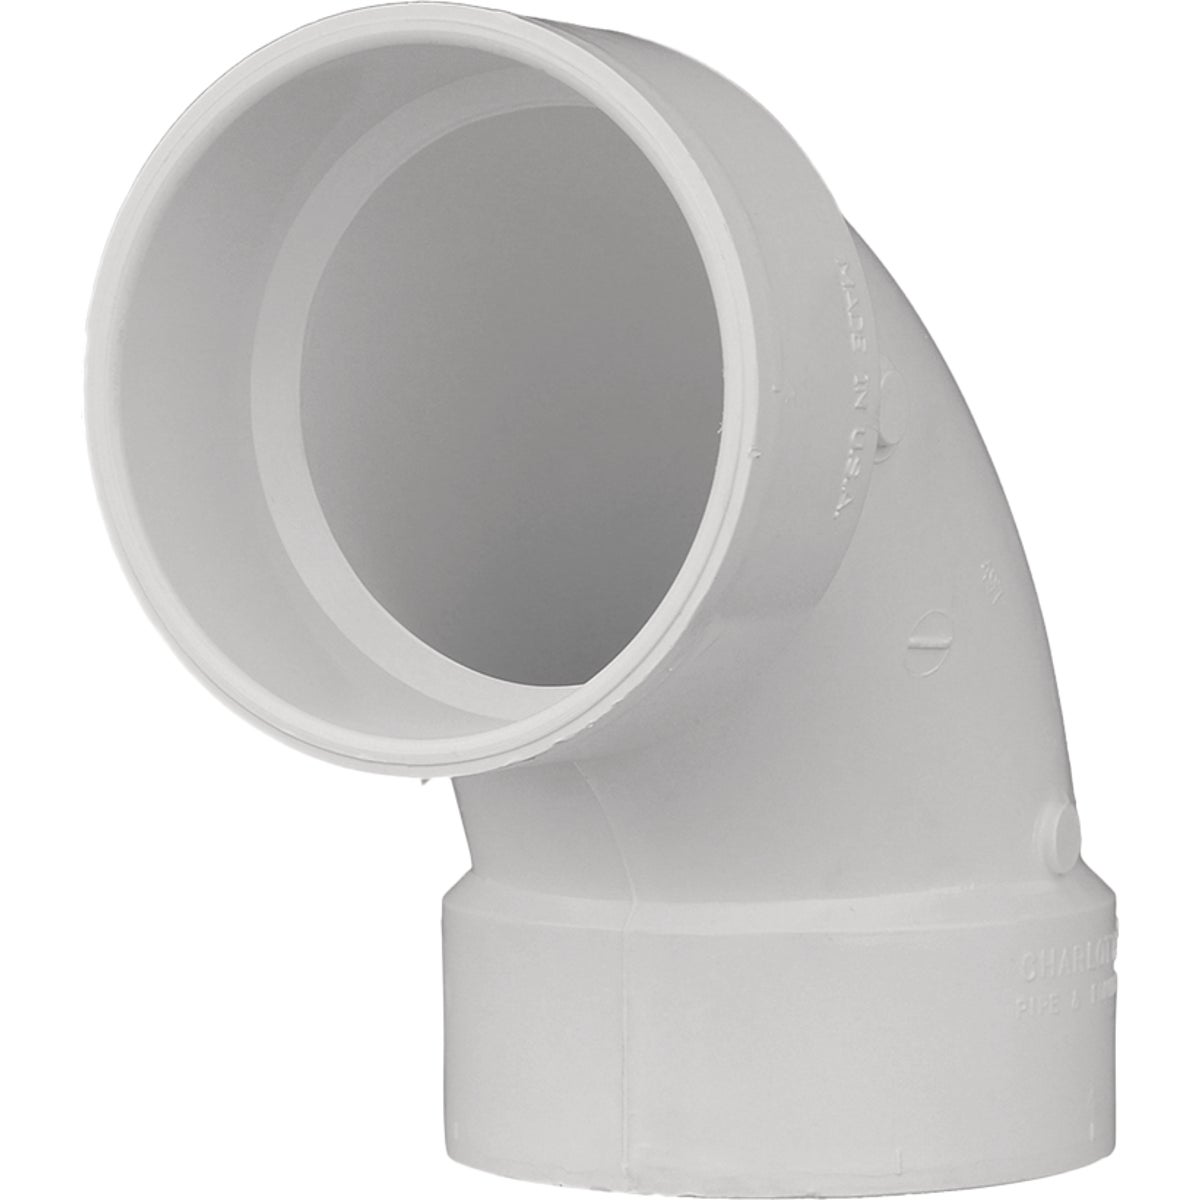 "6""90D DWV SANITARY ELBOW - 72860 by Genova Inc  Pvc Dwv"